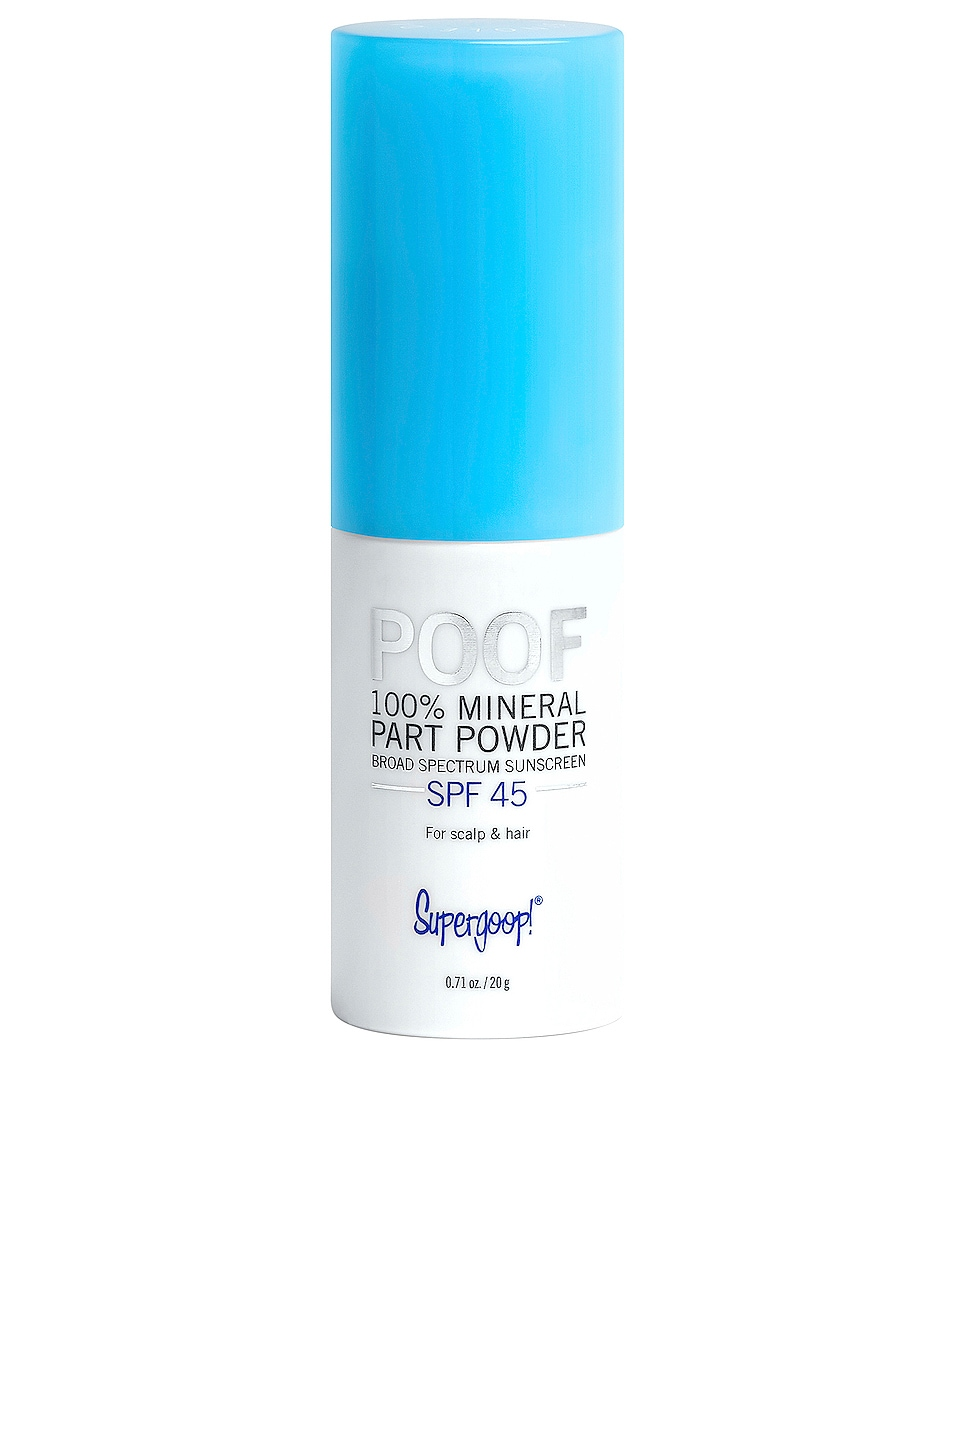 Supergoop! Poof 100% Mineral Part Powder SPF 45